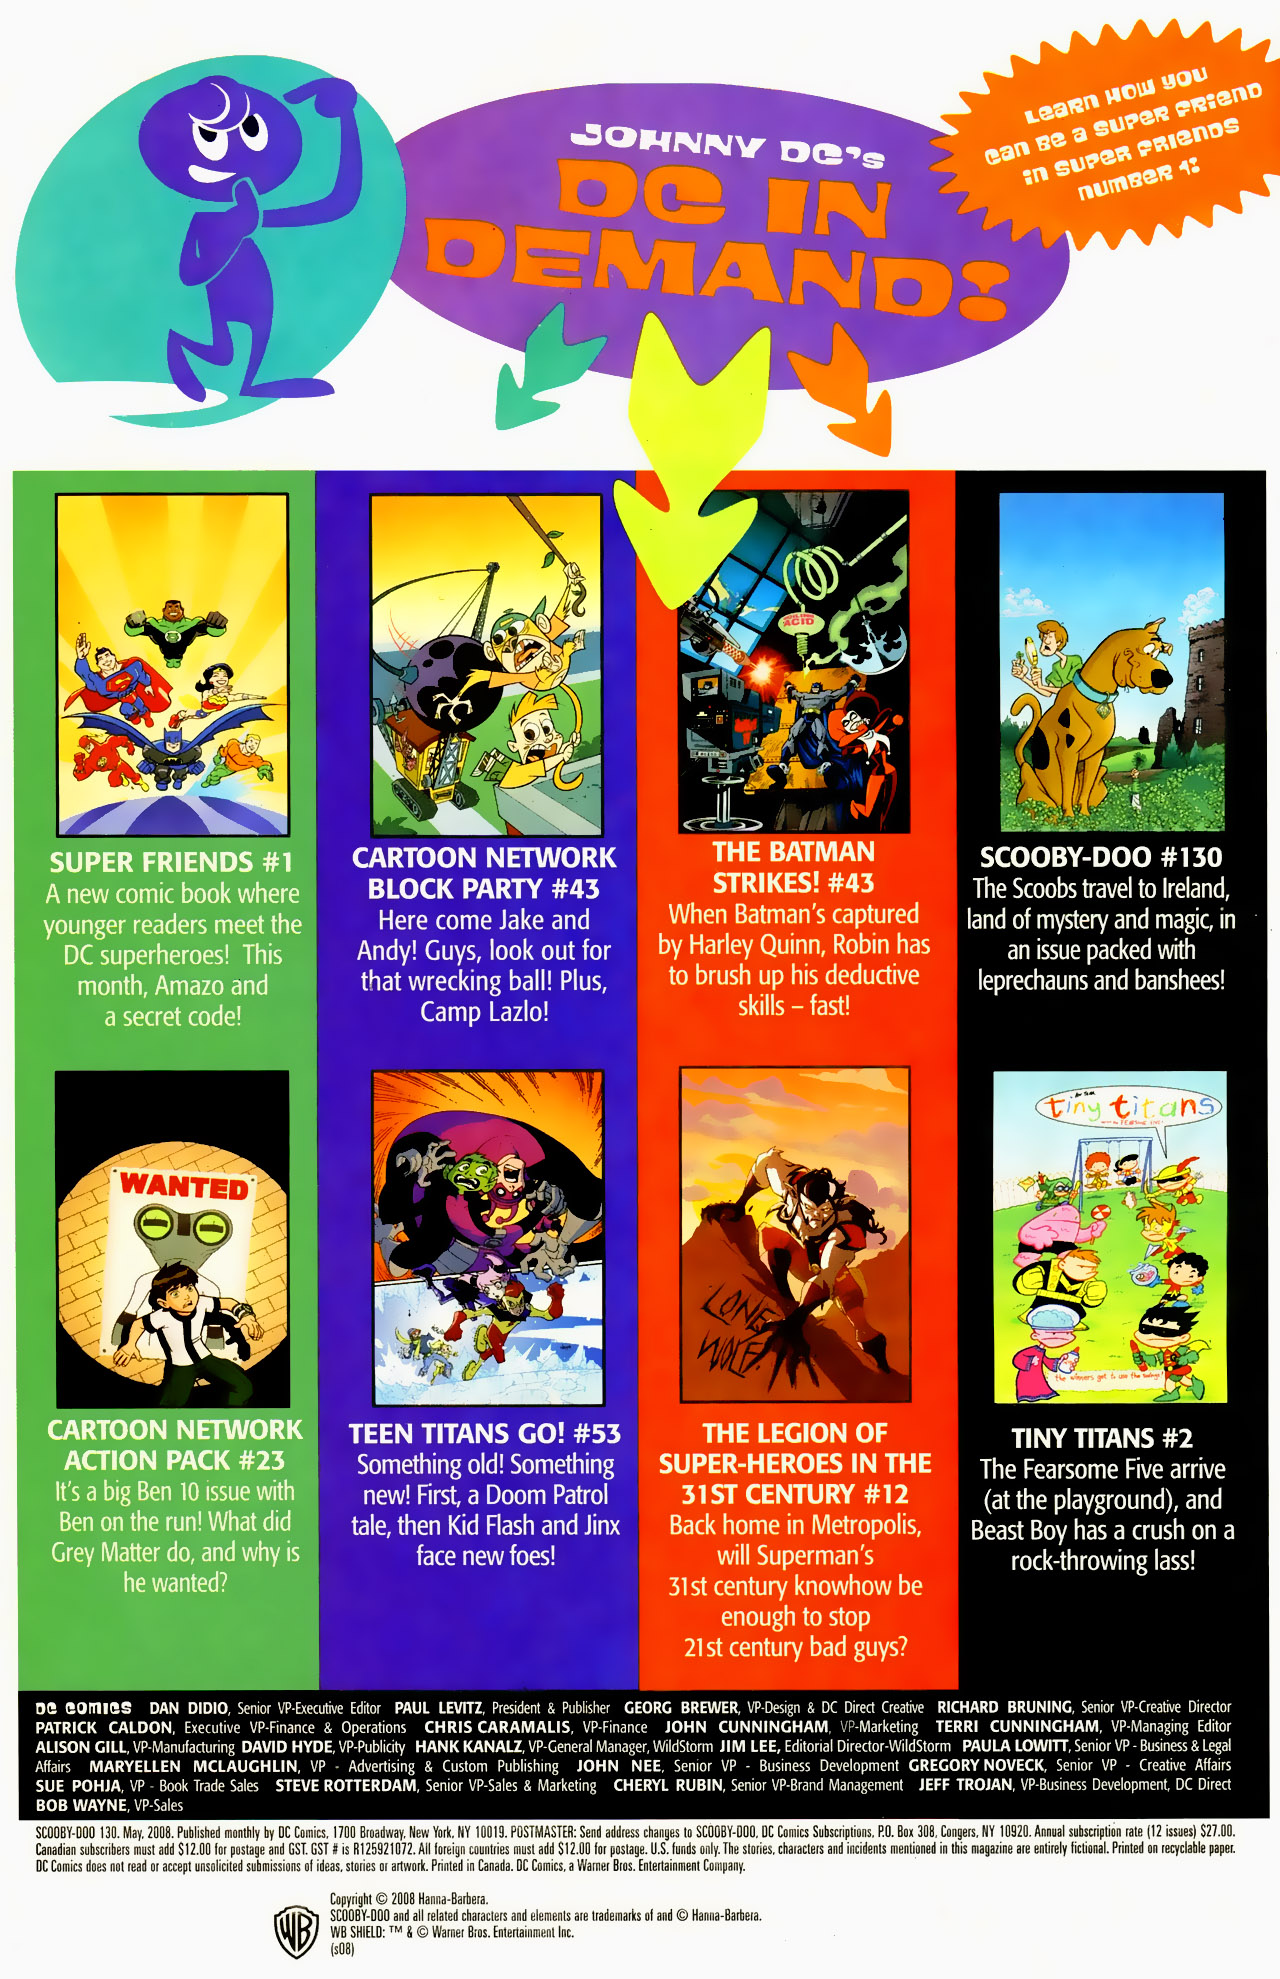 Read online Scooby-Doo (1997) comic -  Issue #130 - 23